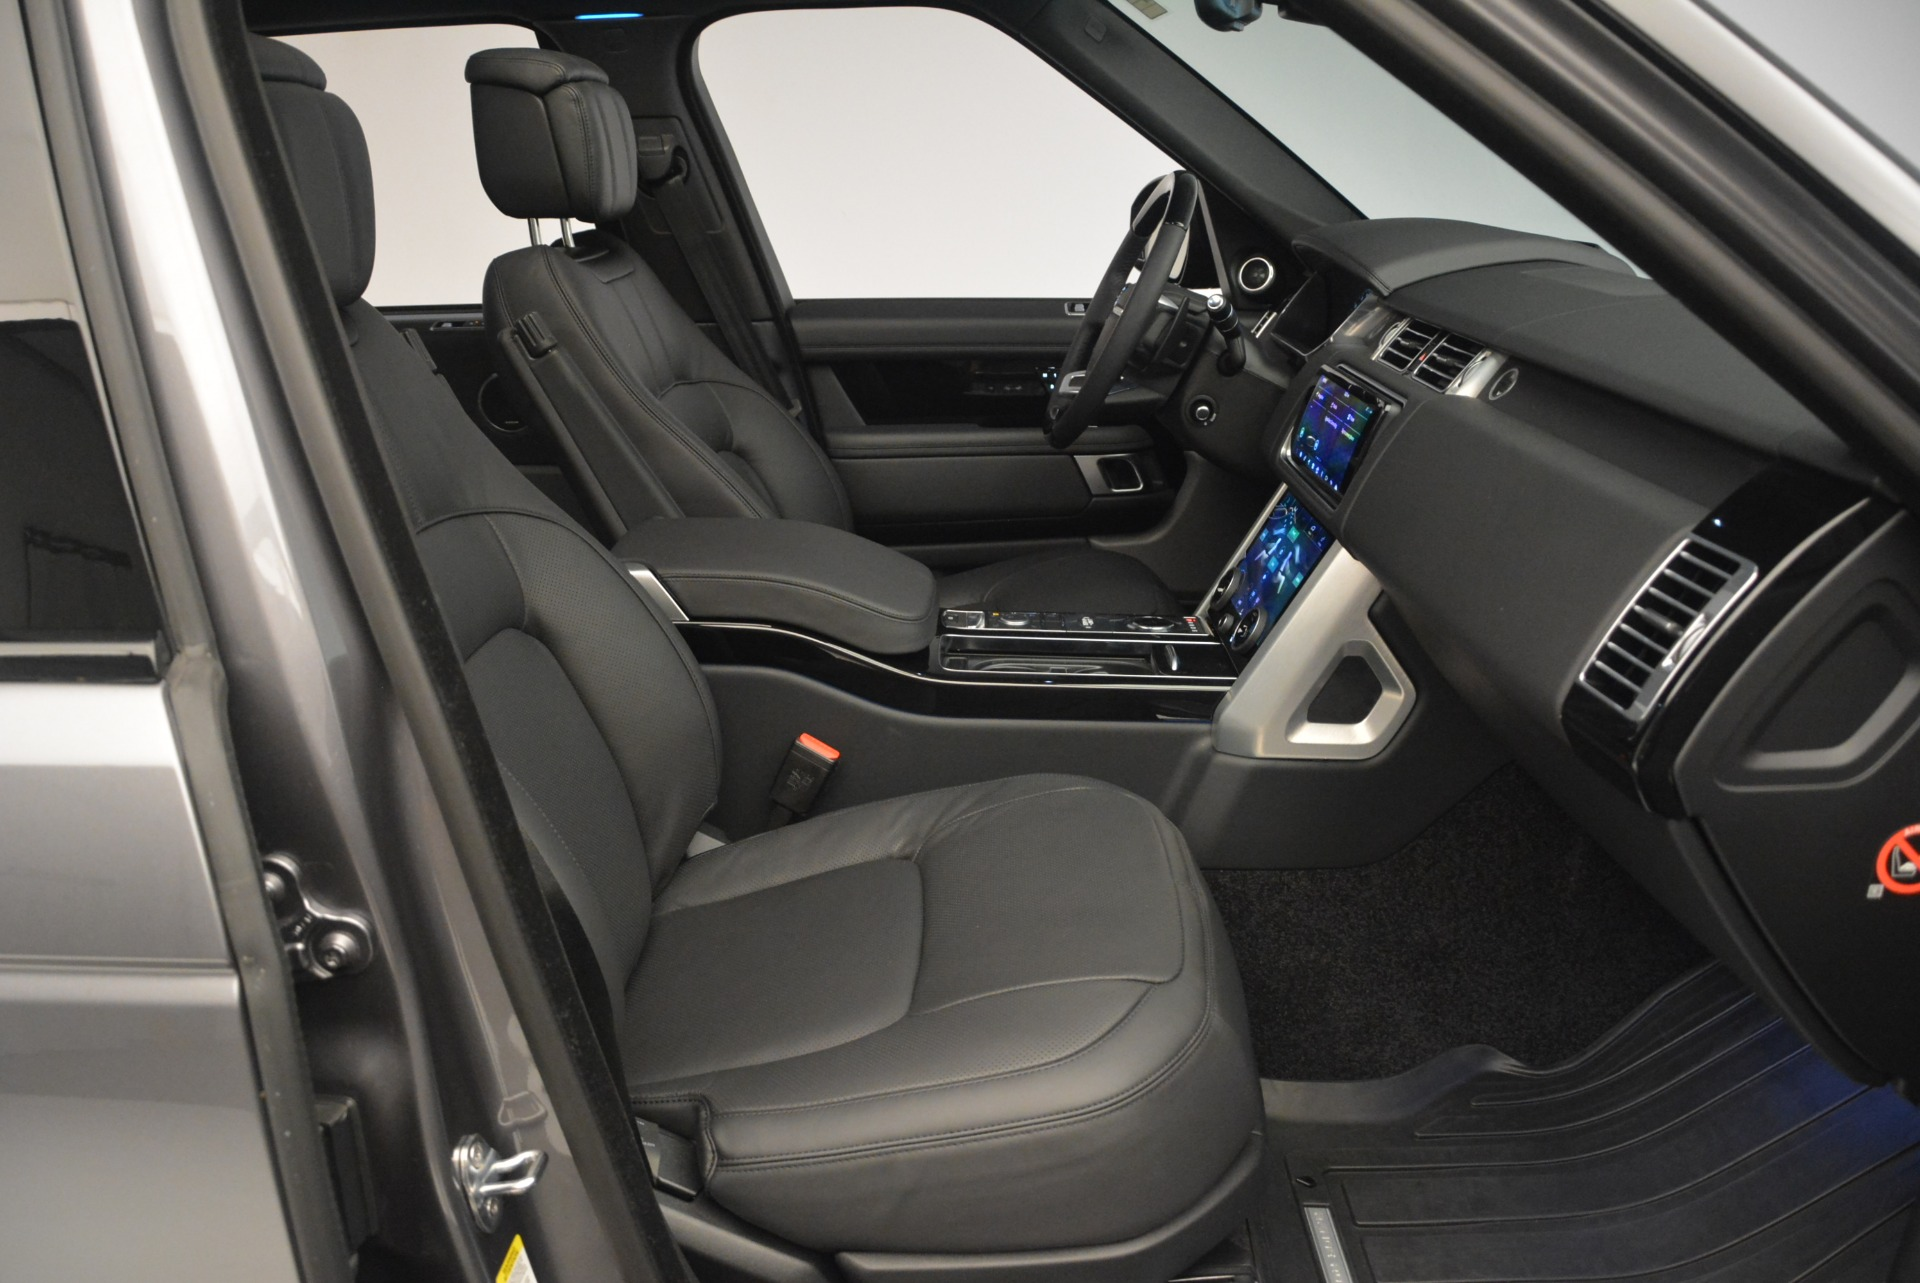 Used 2018 Land Rover Range Rover Supercharged LWB For Sale In Greenwich, CT 2291_p30